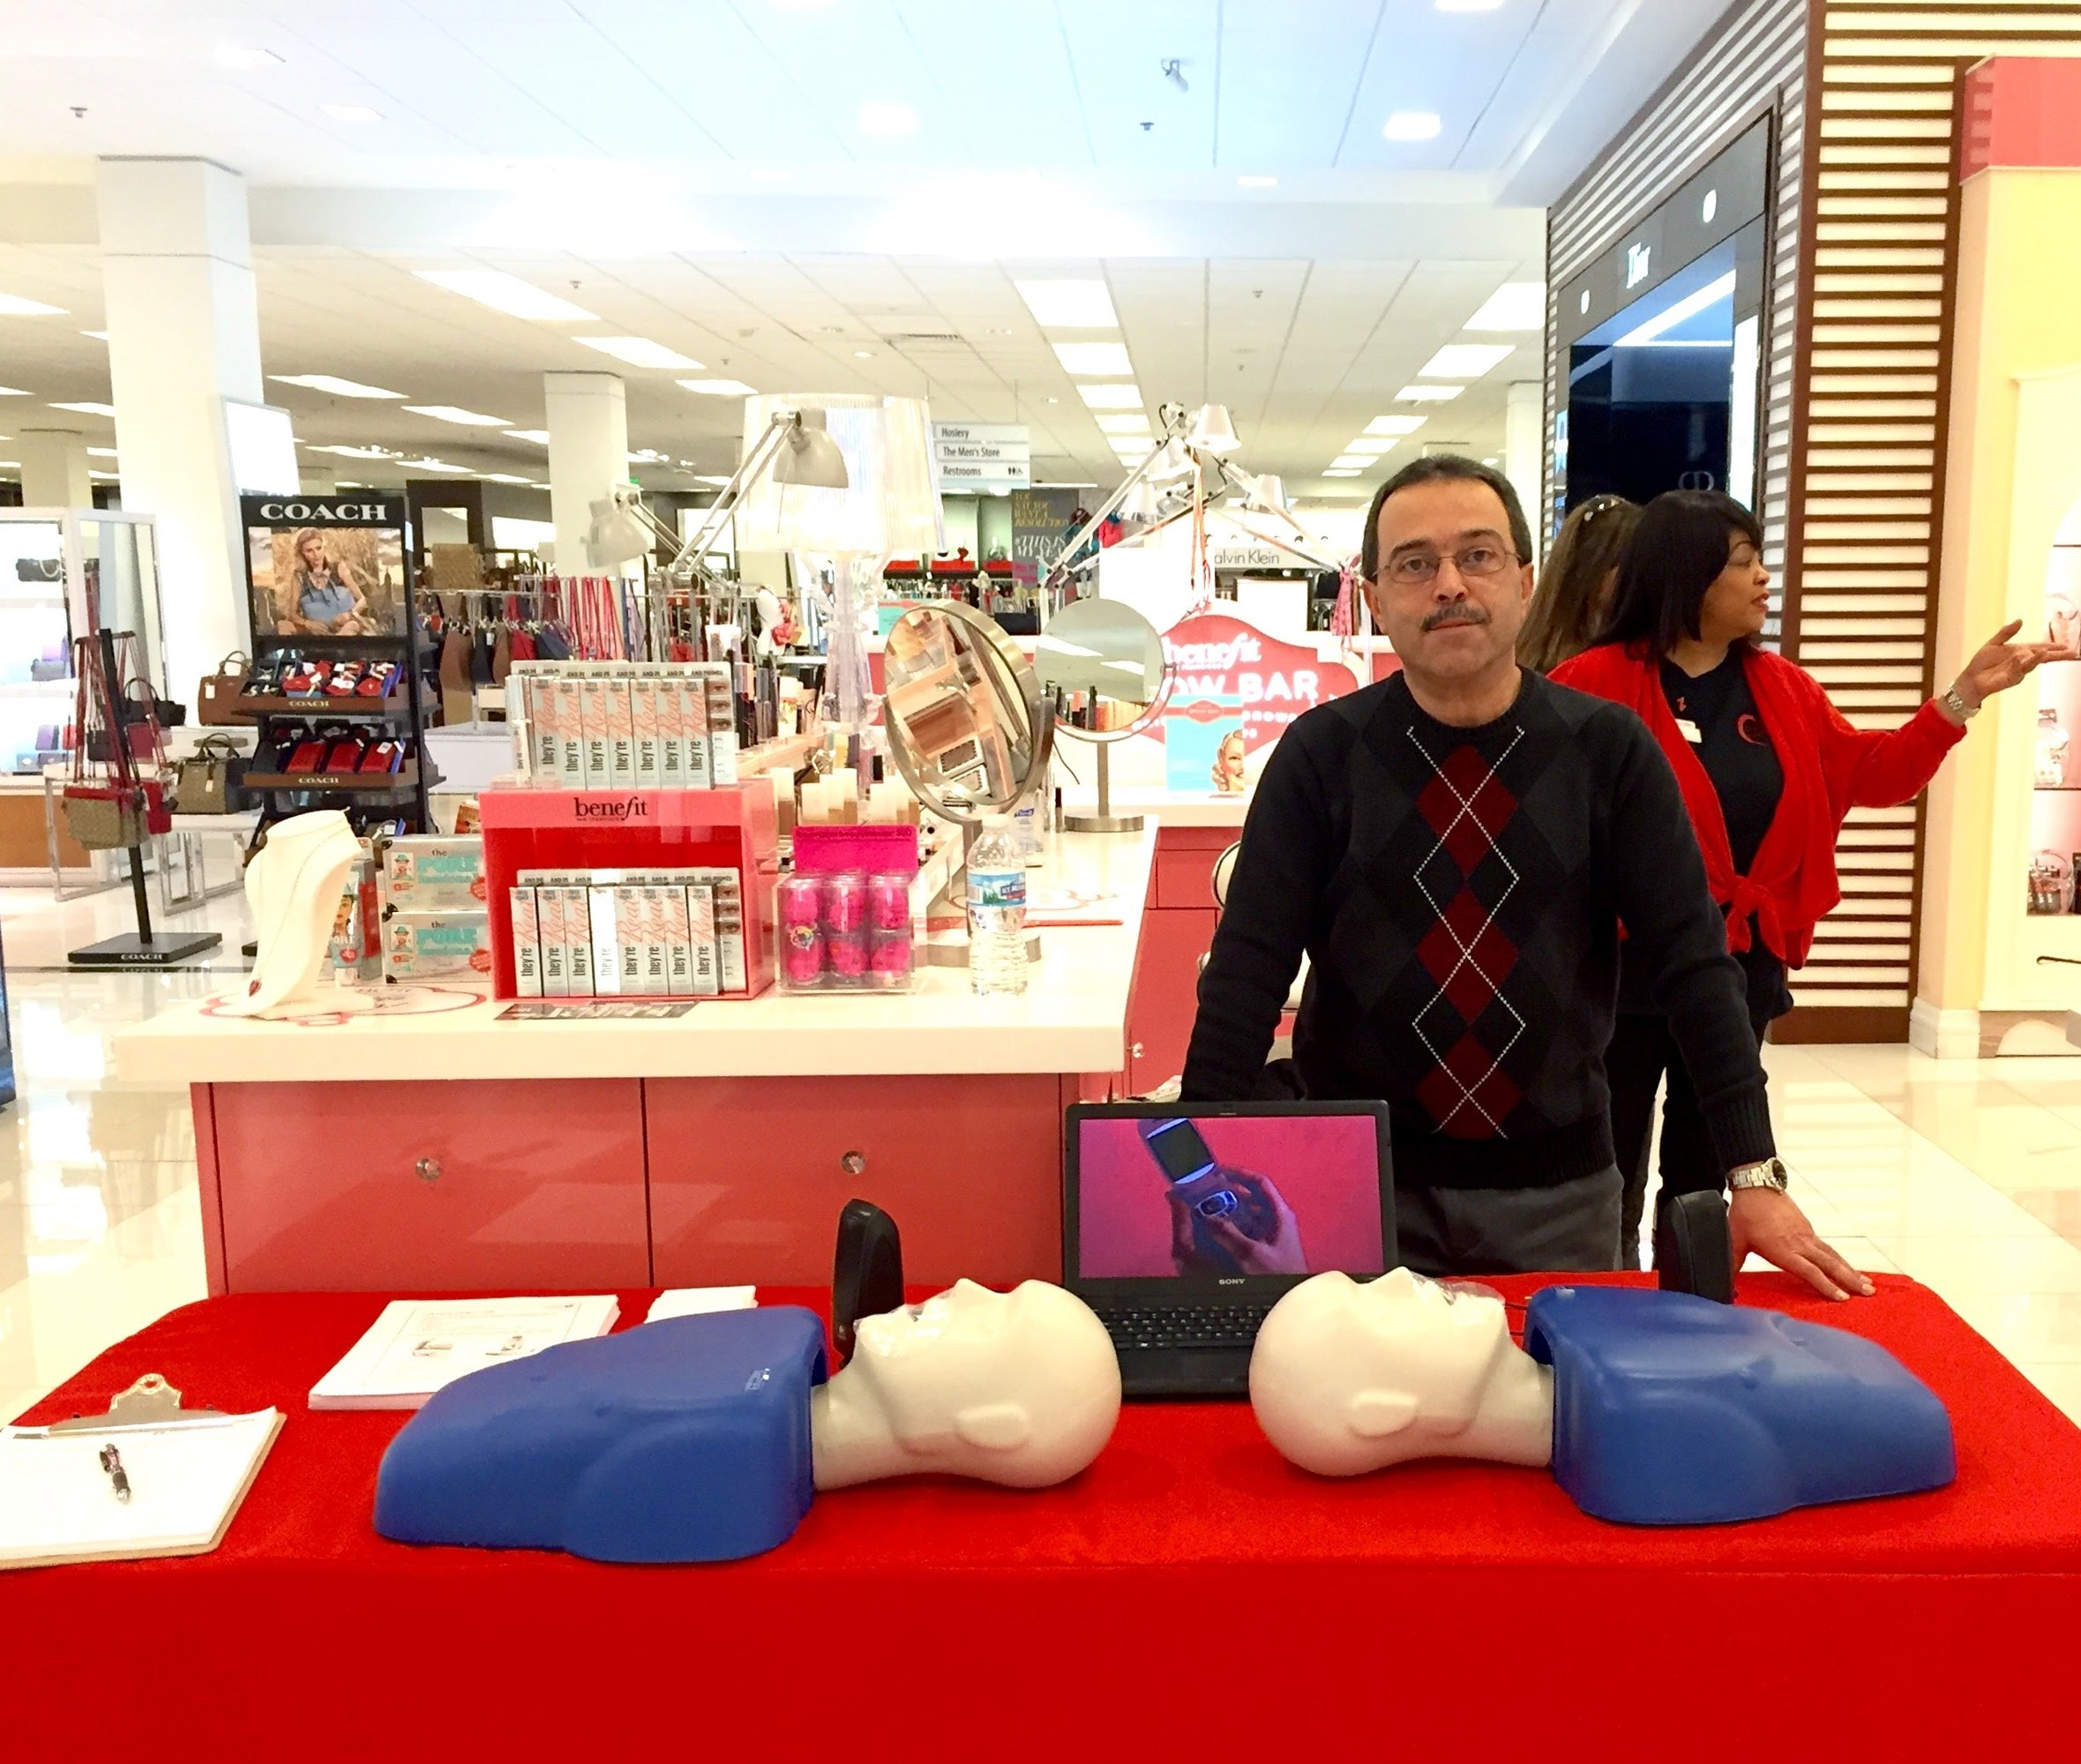 Hands-Only CPR Can Save Lives  - Most people who experience cardiac arrest at home, work or in a public location die because they don't receive immediate CPR from someone on the scene.If you see an adult suddenly collapse, call 911 and push hard and fast in the center of the chest.Immediate CPR can double or even triple a person's chance of survival.Learn More